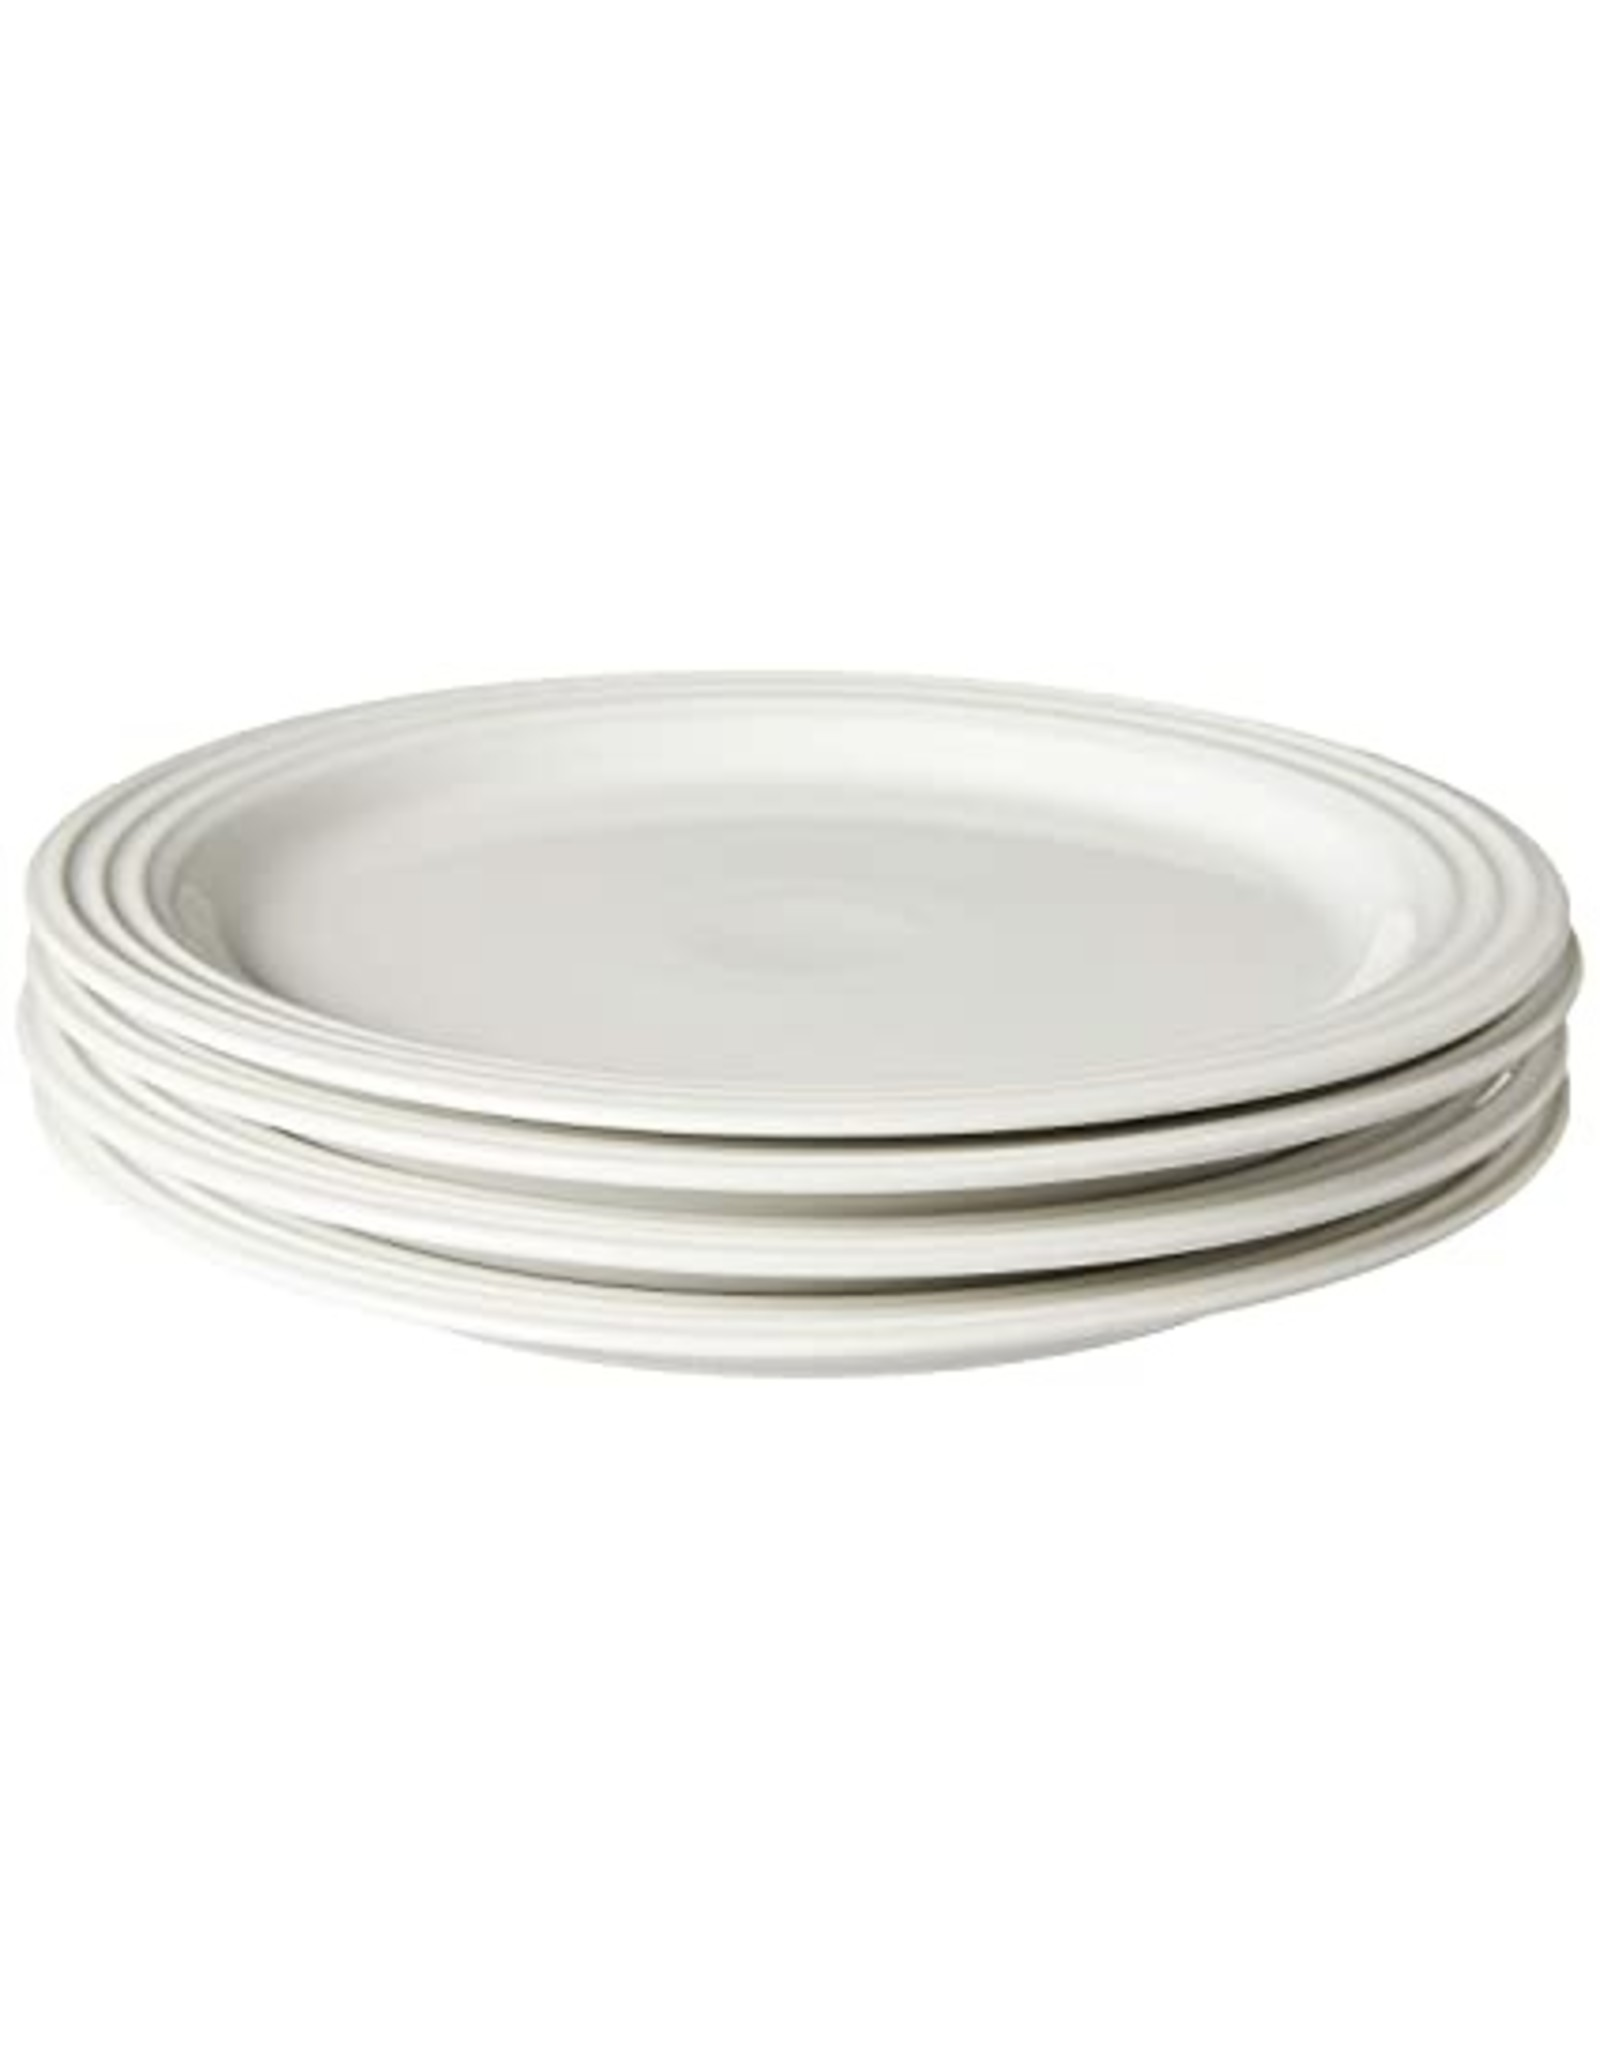 "Le Creuset LE CREUSET- 10.5"" Dinner Plate 4pc- White"